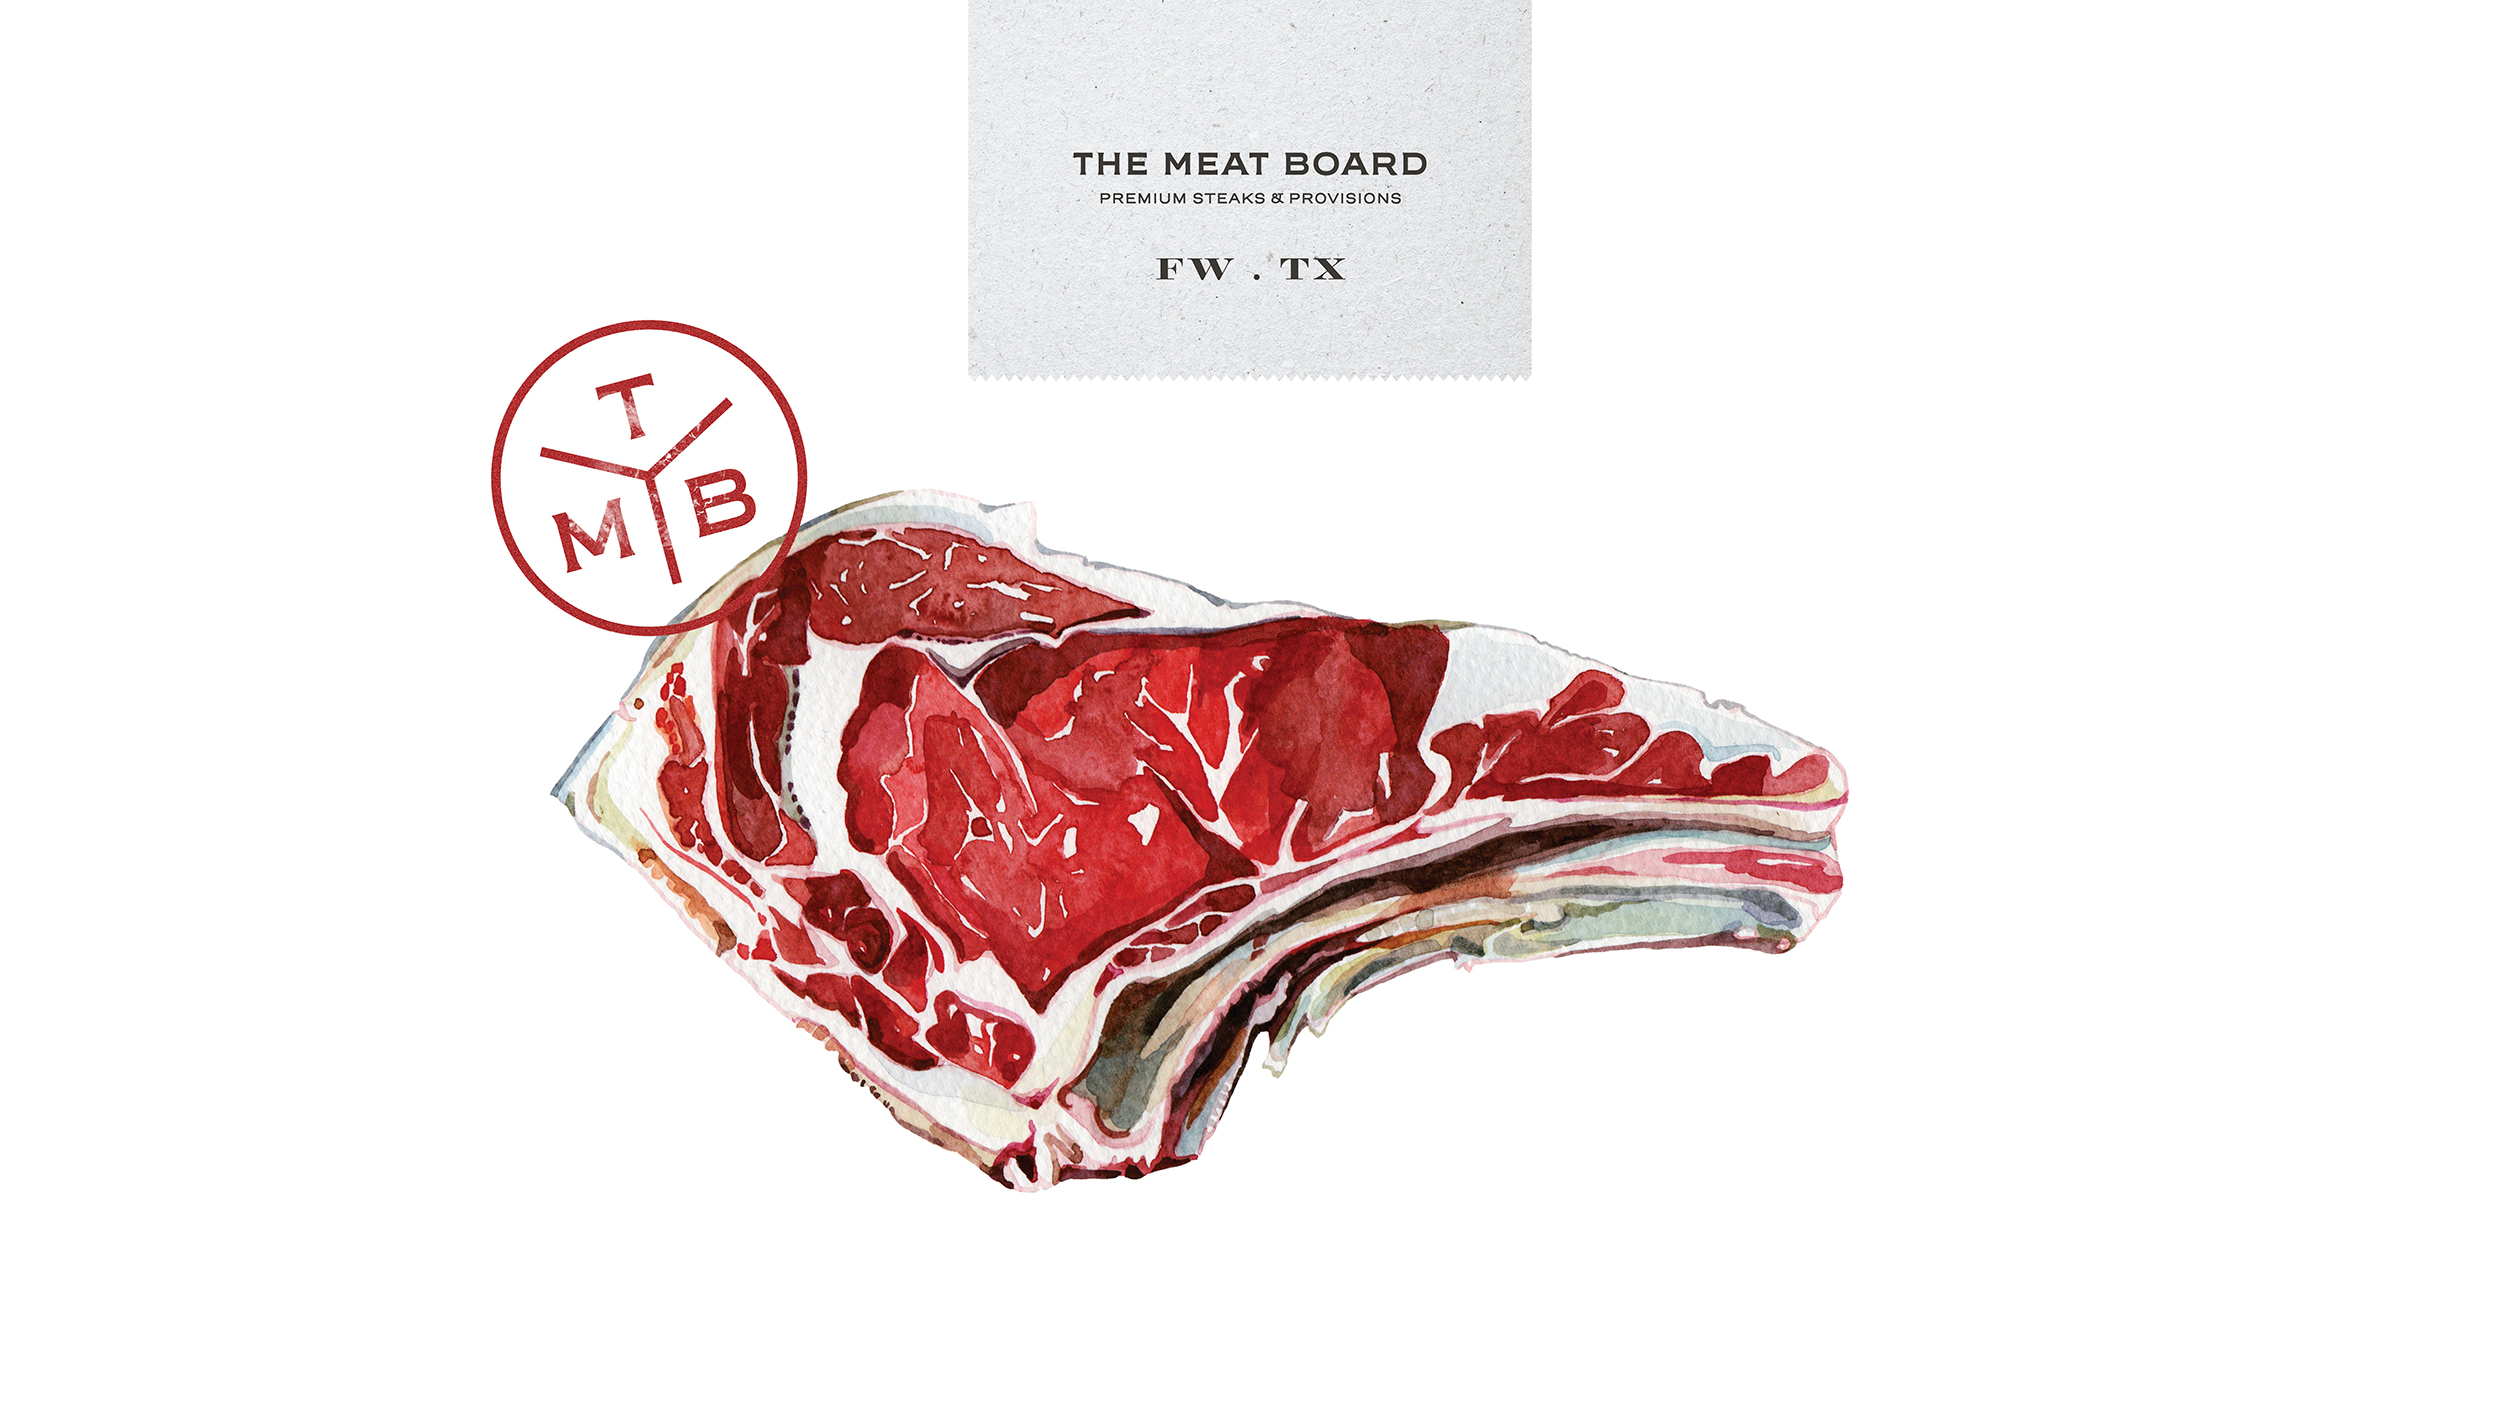 The Meat Board